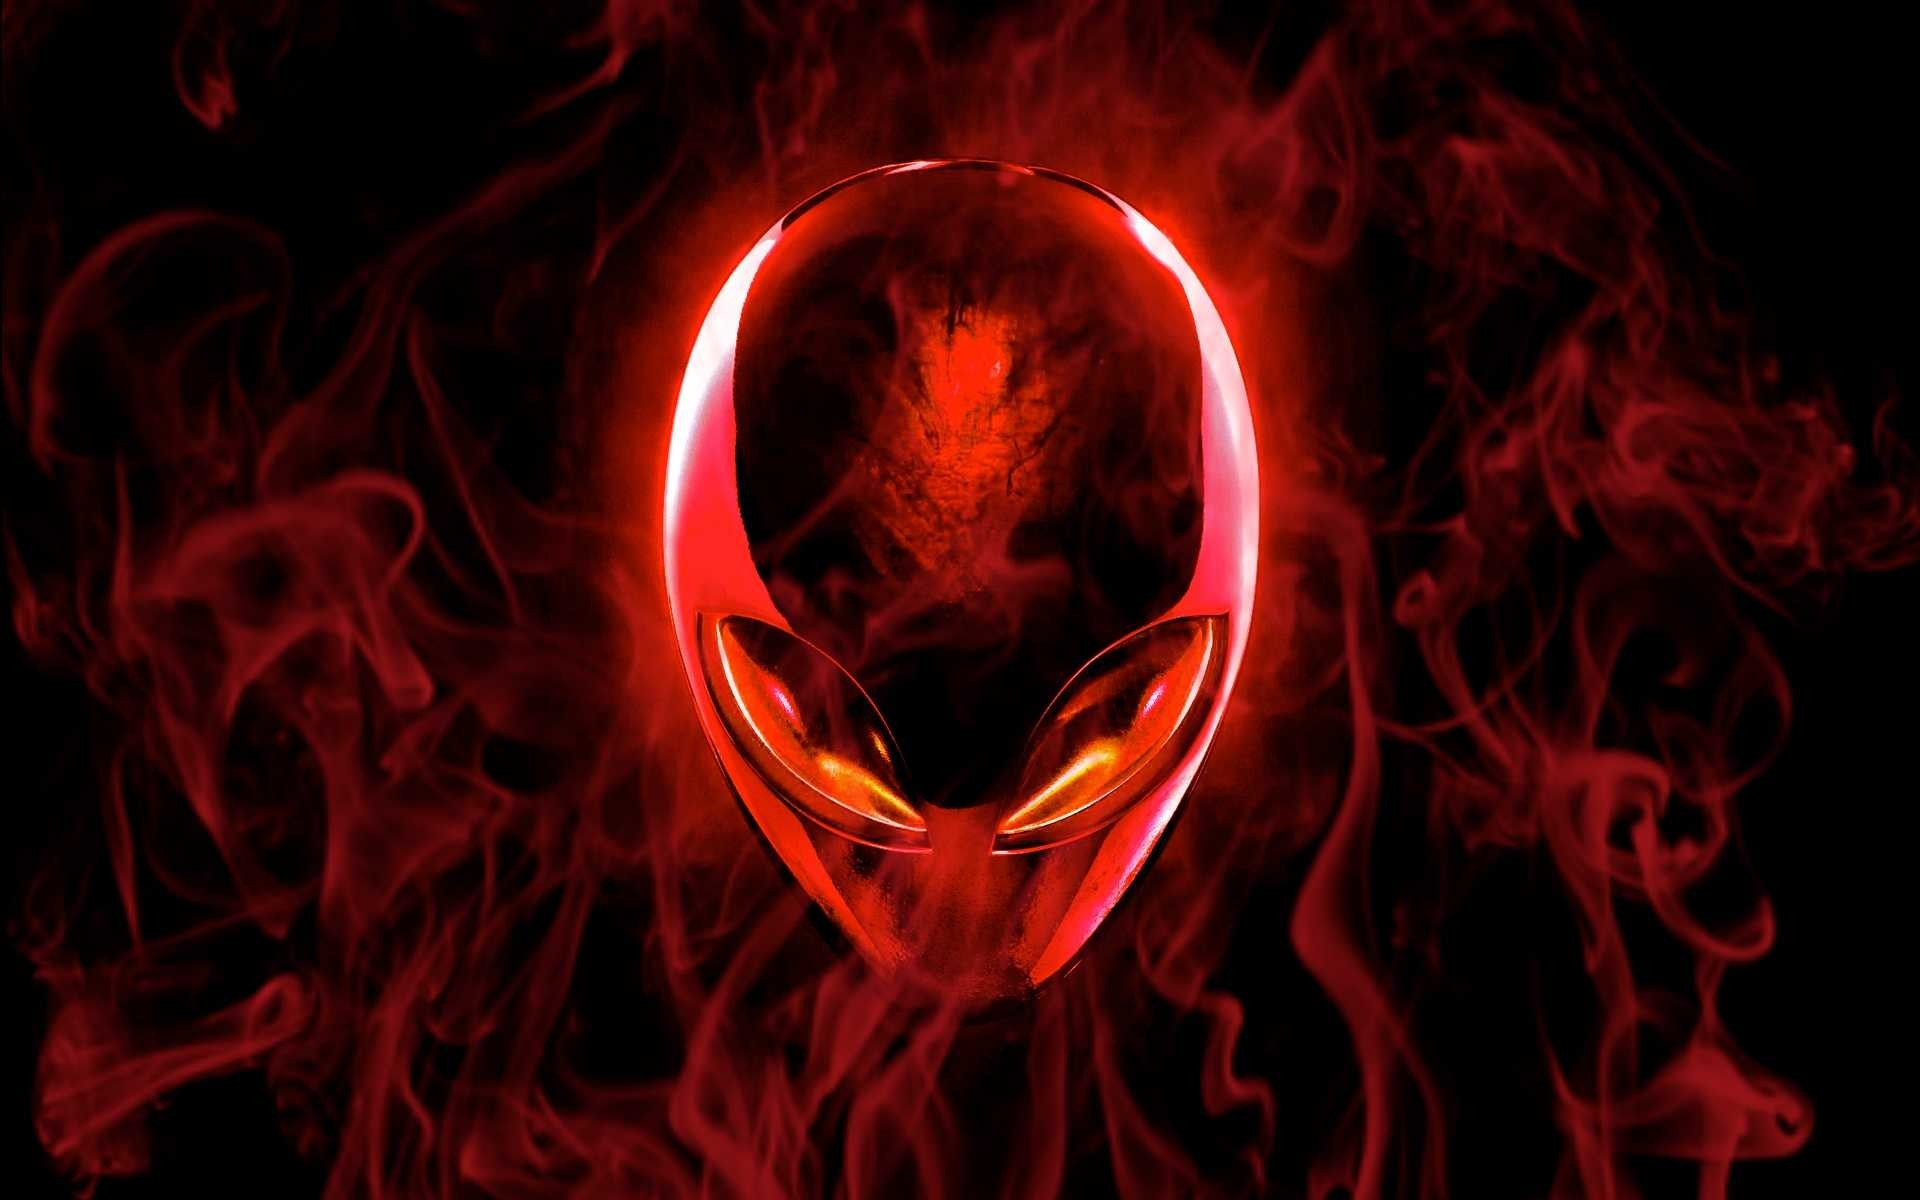 Res: 1920x1200, Hd Alienware Backgrounds For Wallpaper Red Mobile Laptop Pics